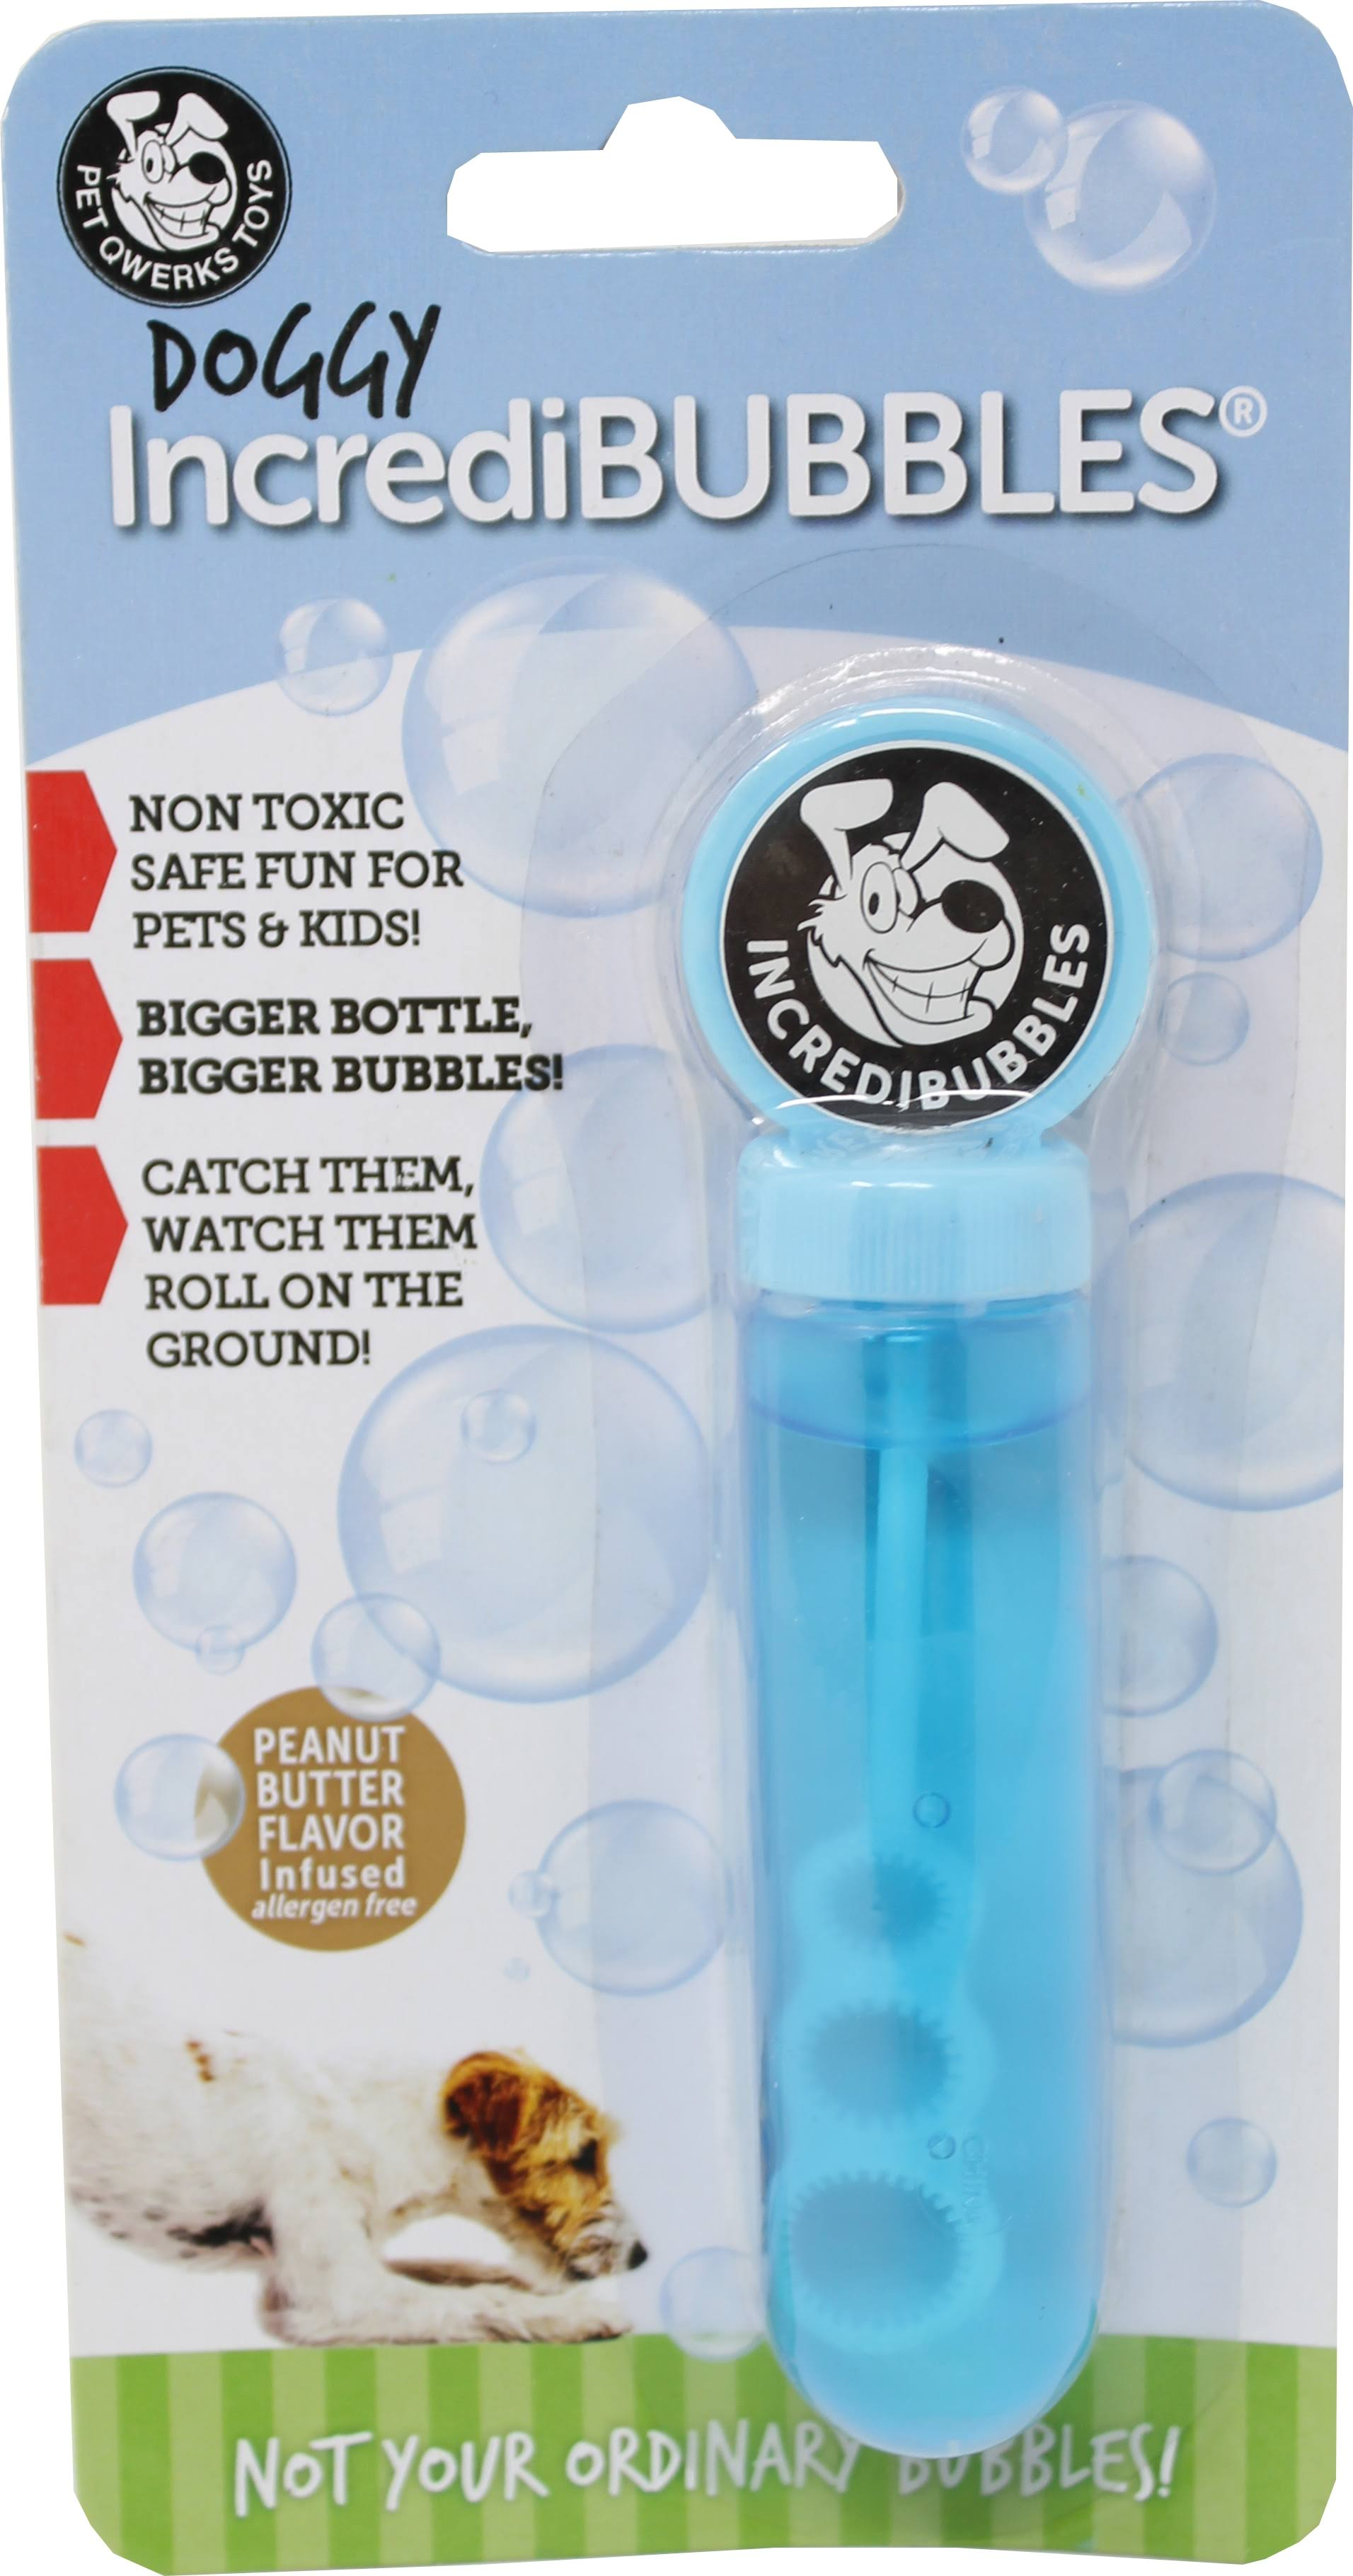 Pet Qwerks - Doggy Incredibubbles Peanut Butter